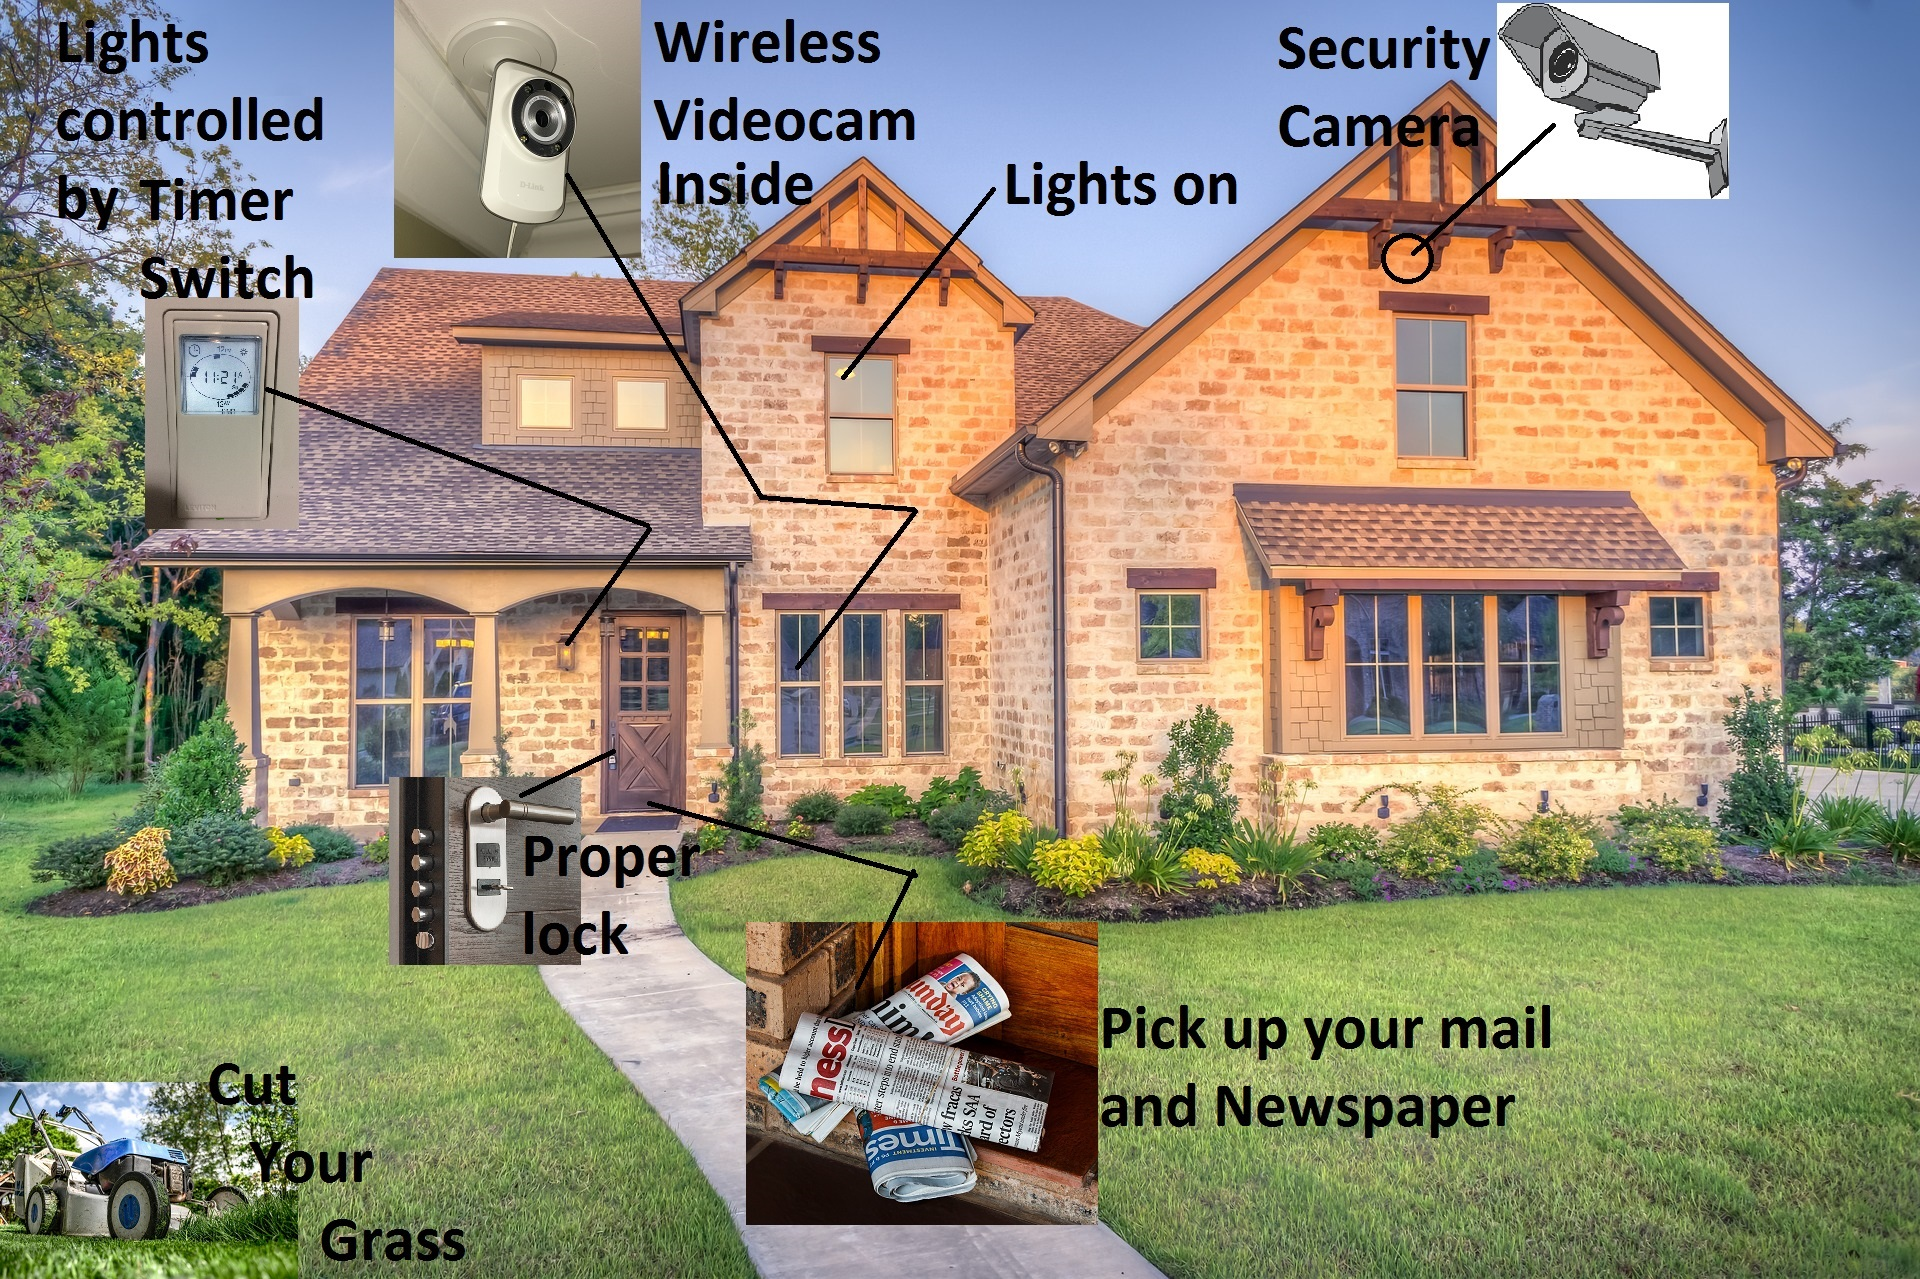 Best Home Security Tips Home Security Tips on home beauty tips, home security companies, mortgage tips, security systems, security cameras, alarm systems, home hacks, home security equipment, home alarm systems, security alarms, home access control, home software, home hiding places for valuables, home safety tips, home electrical wiring tips, home alarms, burglar alarms, wireless home security, business tips, home security alarm systems, surveillance cameras, wireless home security system, diy tips, home selling tips, dance tips, home security company, home security cameras, interior decorating tips, home security alarm, home products, golf tips, insurance tips, diy home security,